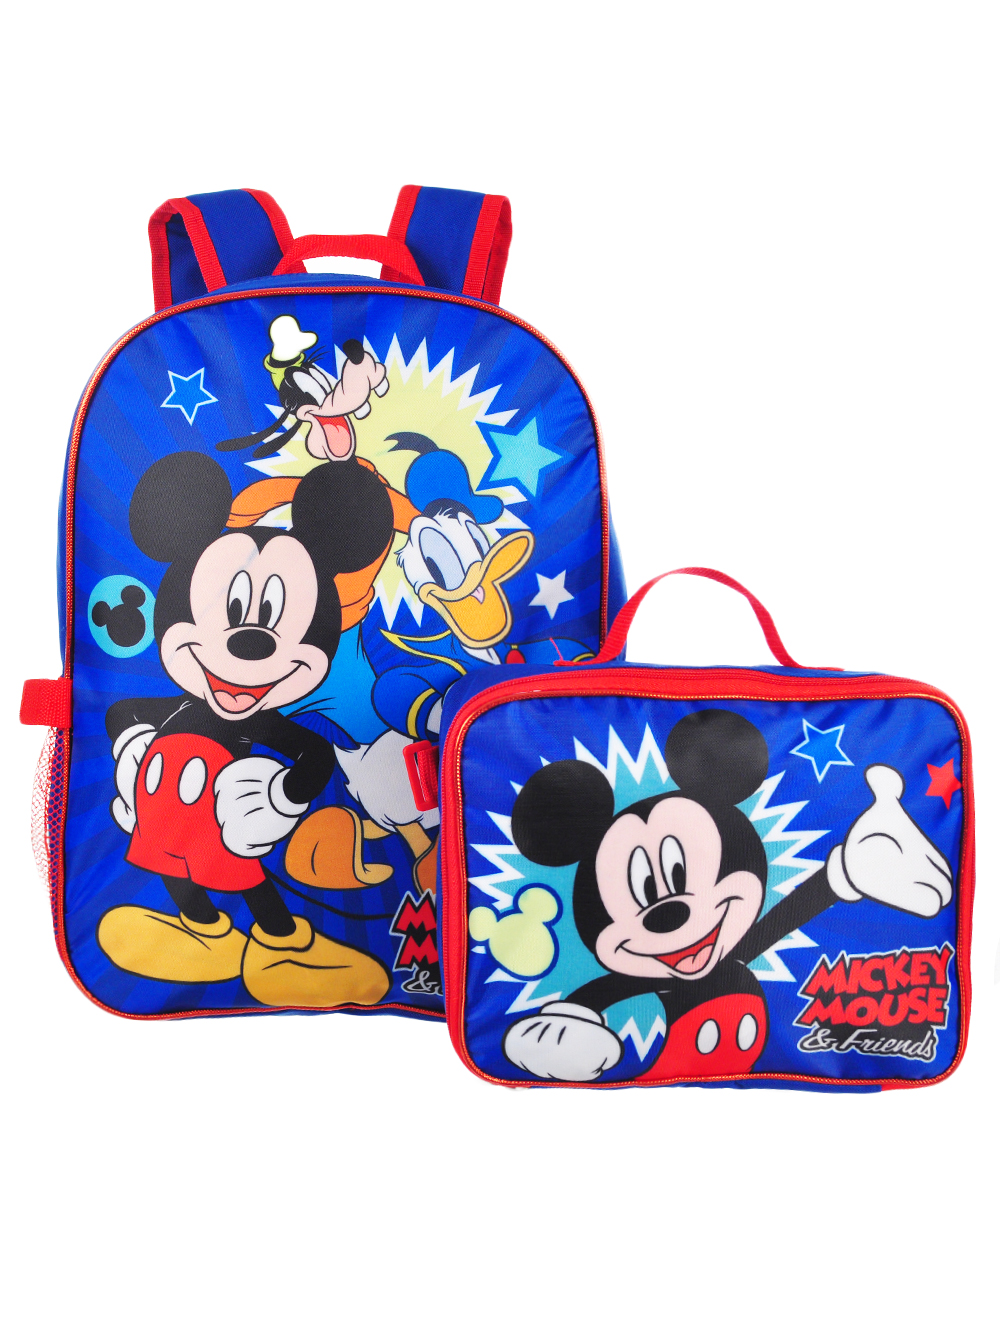 Disney Mickey Mouse Backpack with Insulated Lunchbox